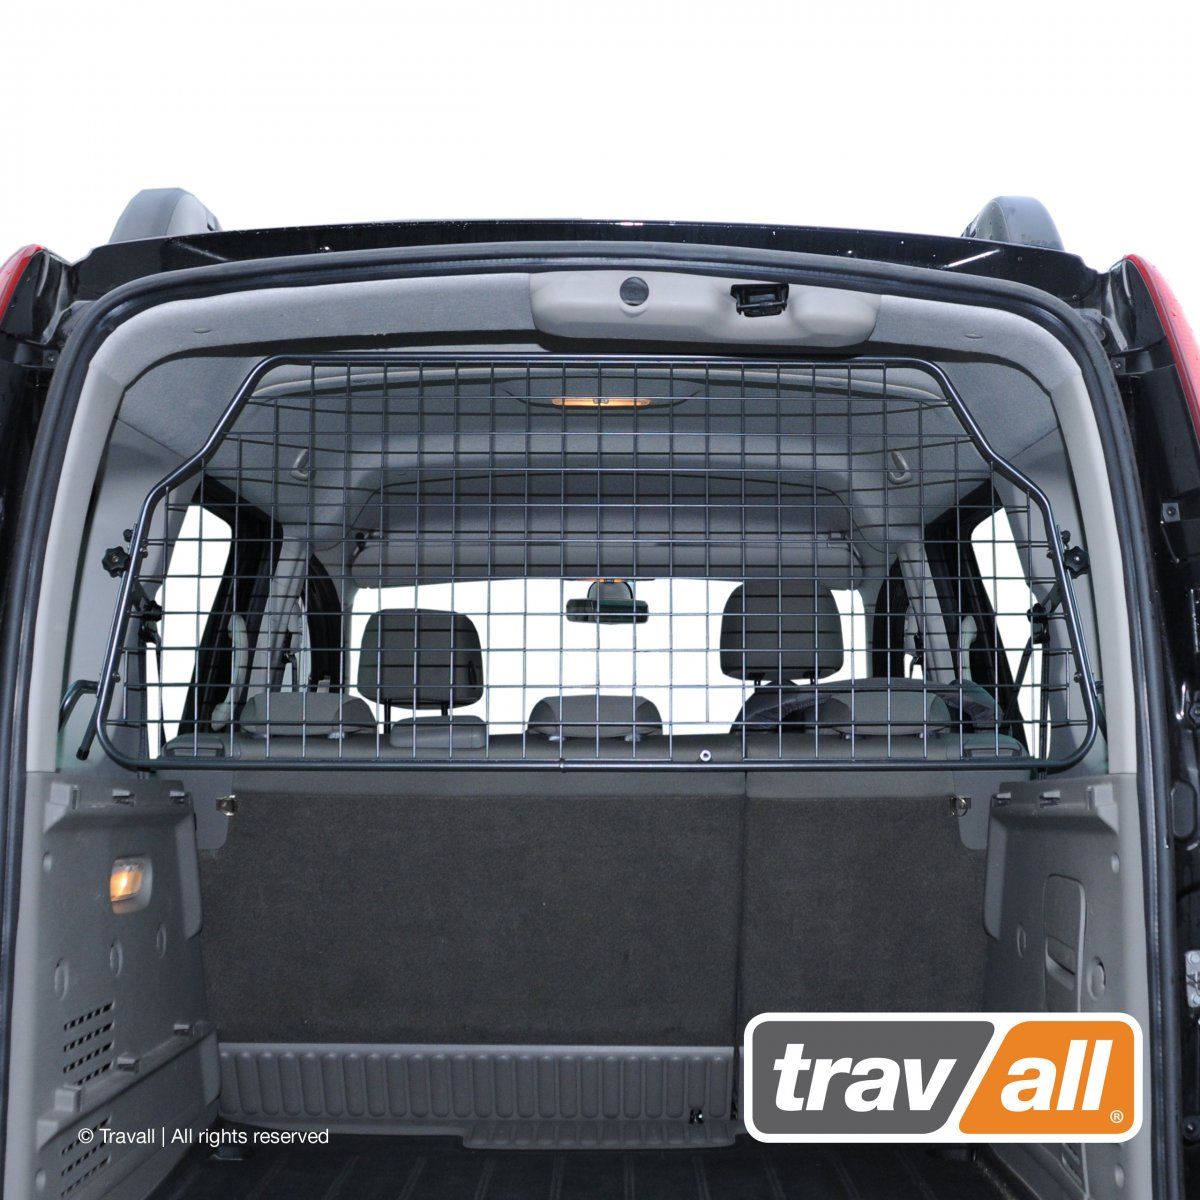 Travall®GUARD voor Mercedes Benz Citan Tourer / Renault Grand Kangoo (2012 >) / Kangoo (2008 >)